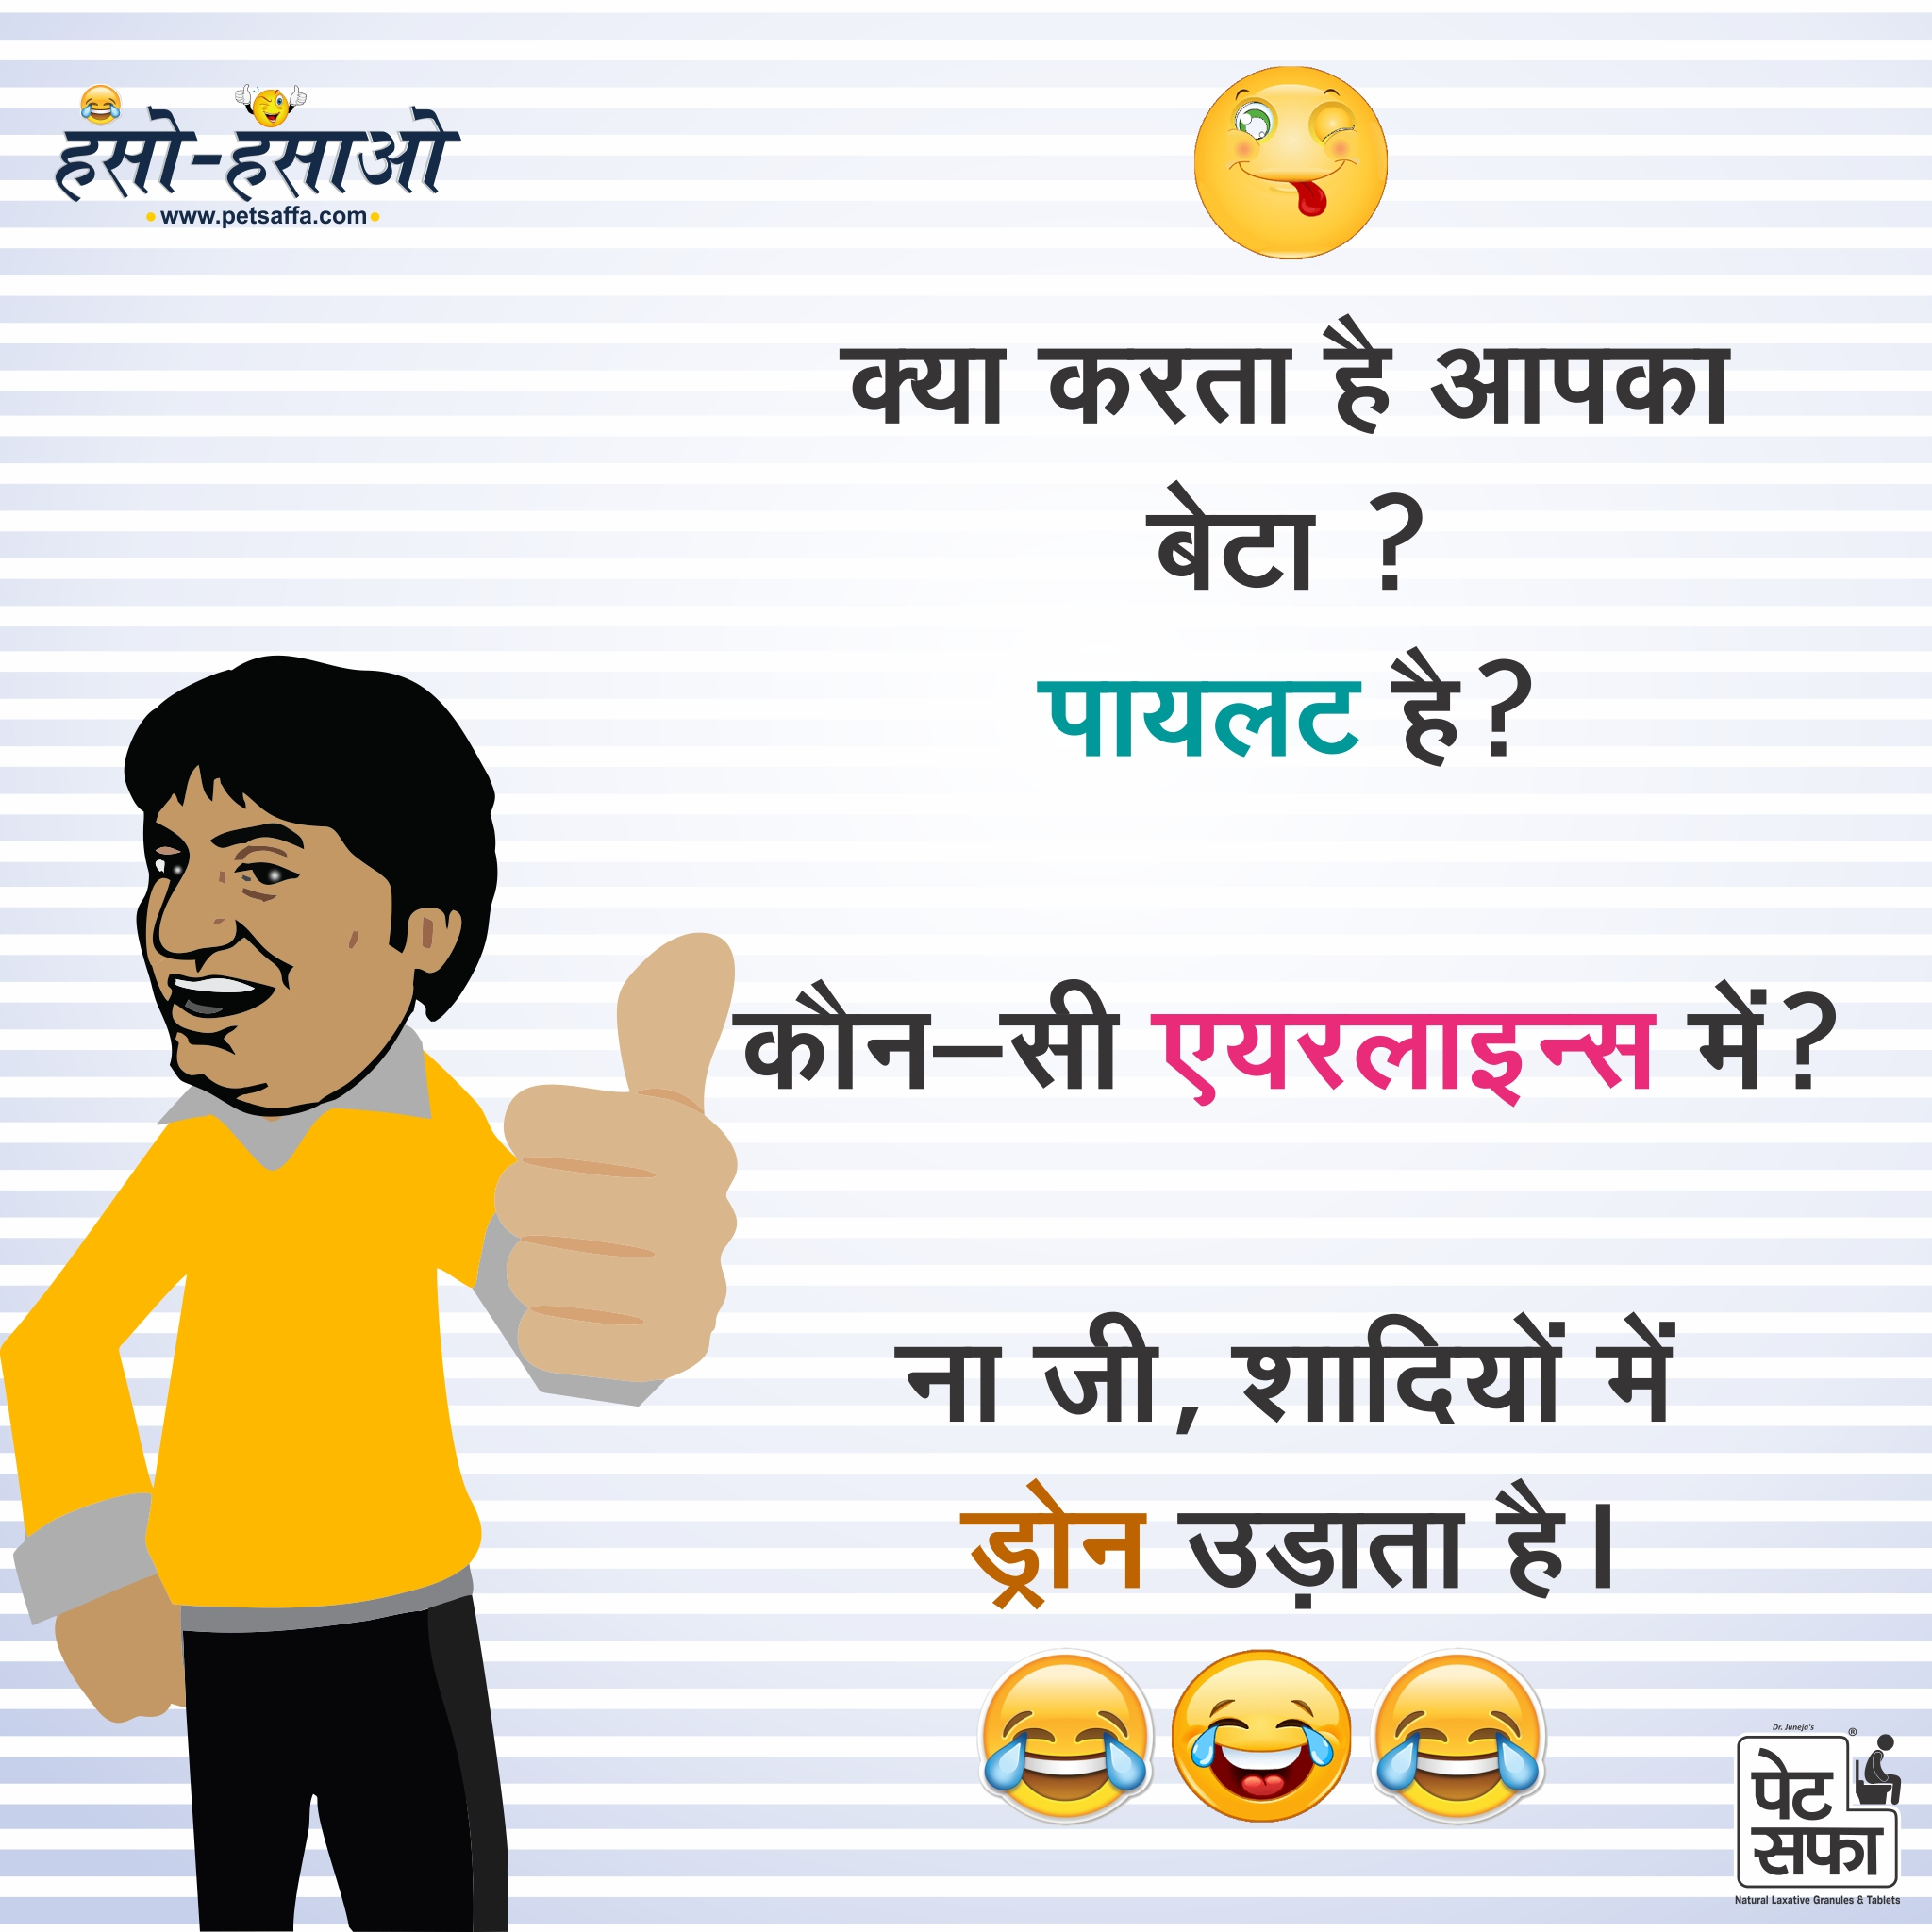 Hindi Funny Jokes - Jokes of the Day